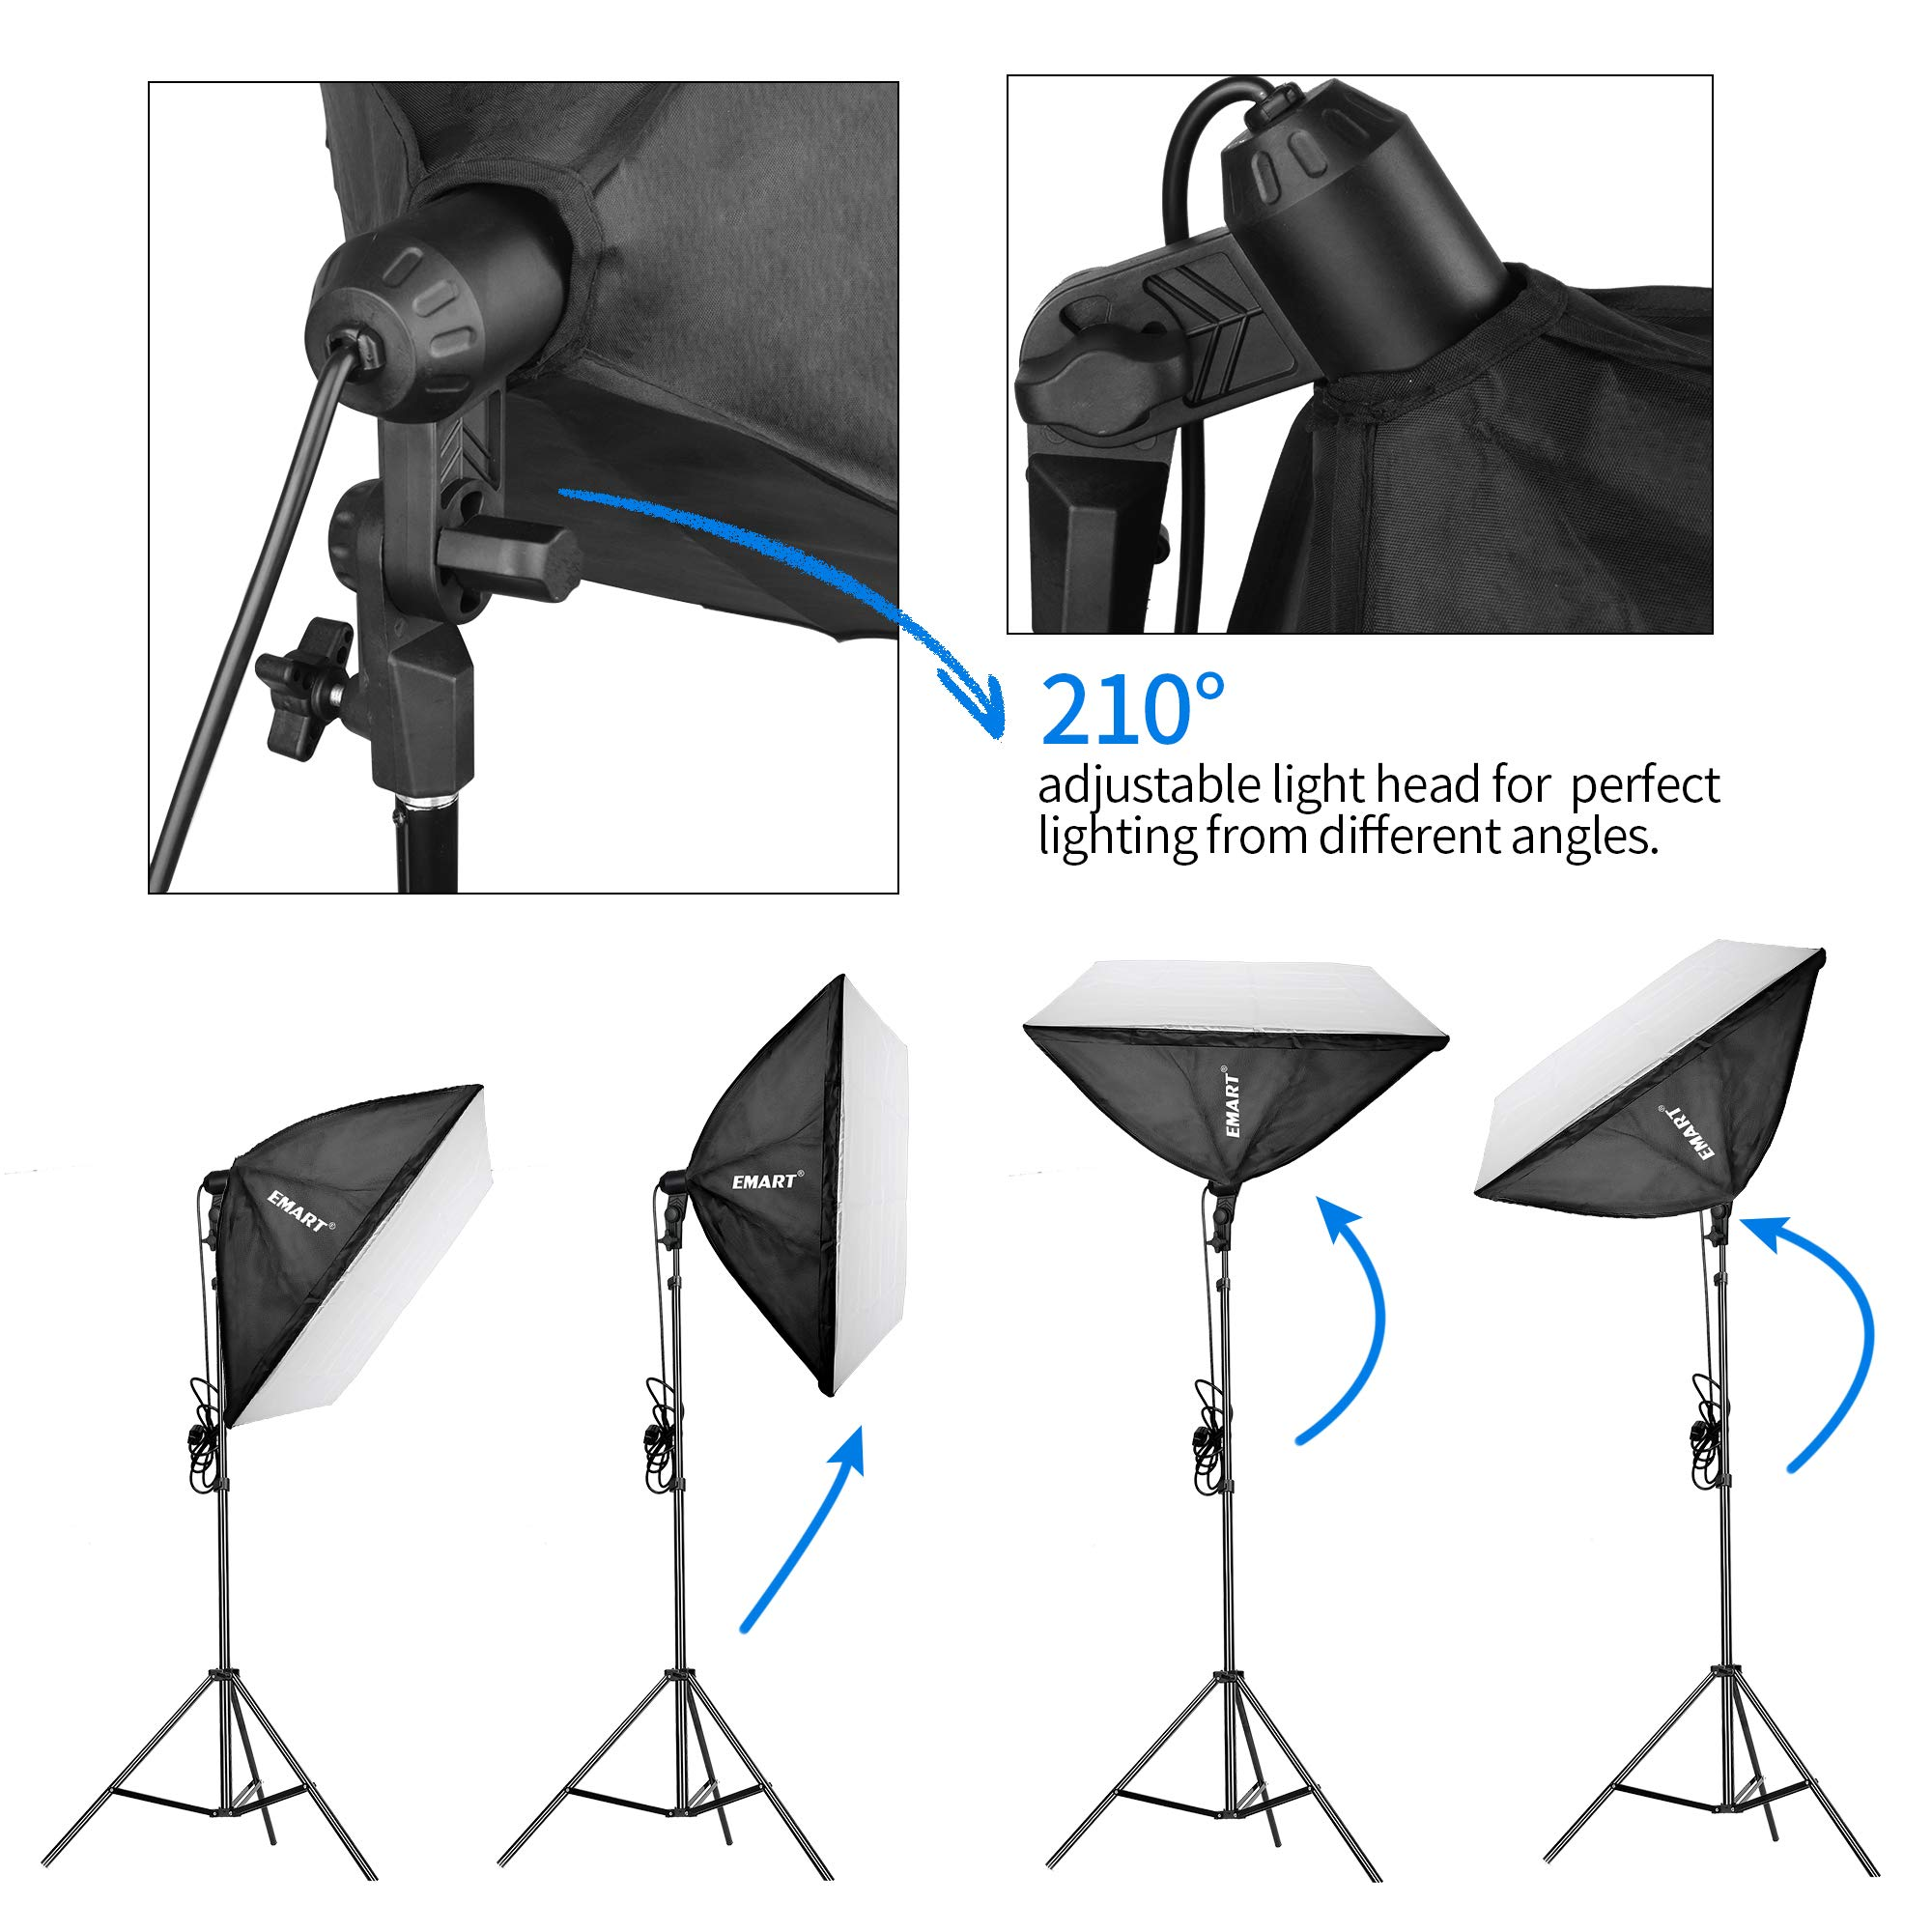 Emart 900W Softbox Lighting Kit Photography Continuous Photo Studio Light System for YouTube Video Shooting Soft Box 24'' x 24'' by EMART (Image #4)